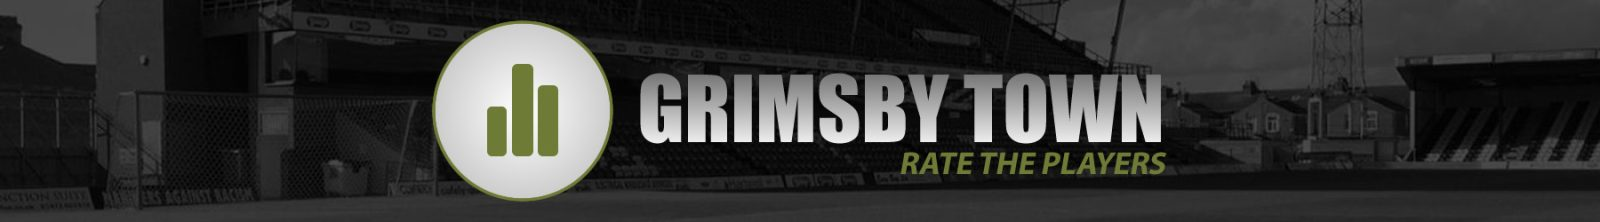 Rate Grimsby Town